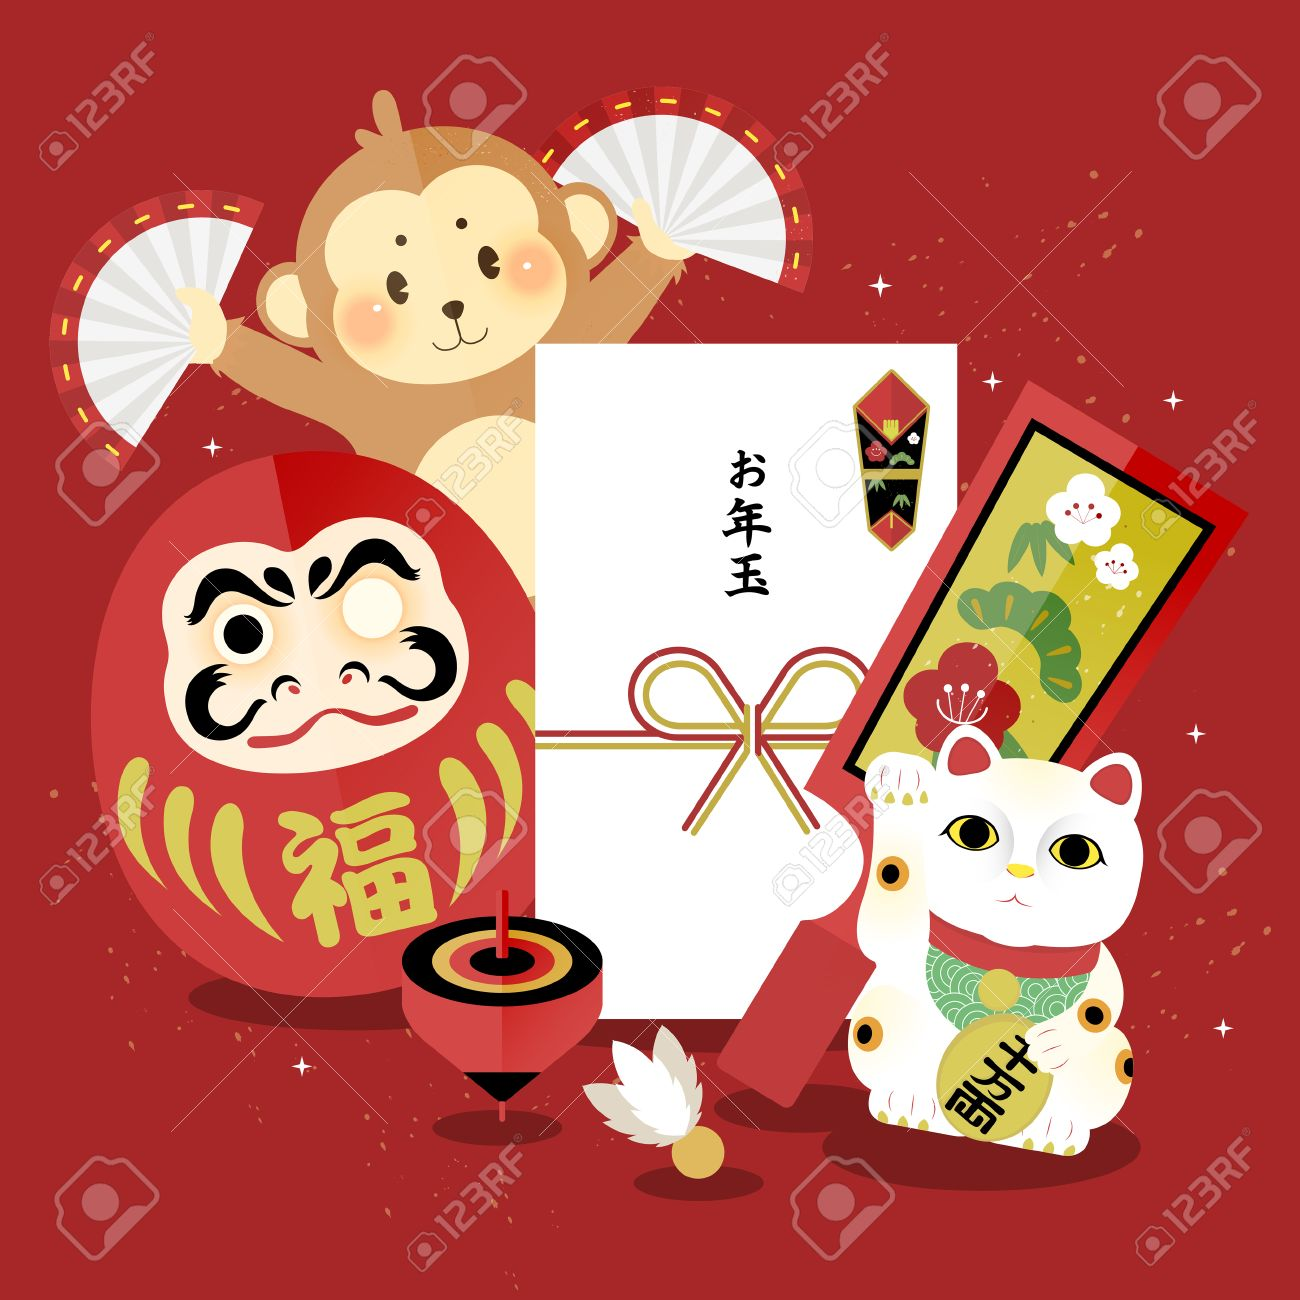 Lovely Japanese New Year Poster Design - New Year Money, Luck.. Royalty  Free Cliparts, Vectors, And Stock Illustration. Image 50046173.